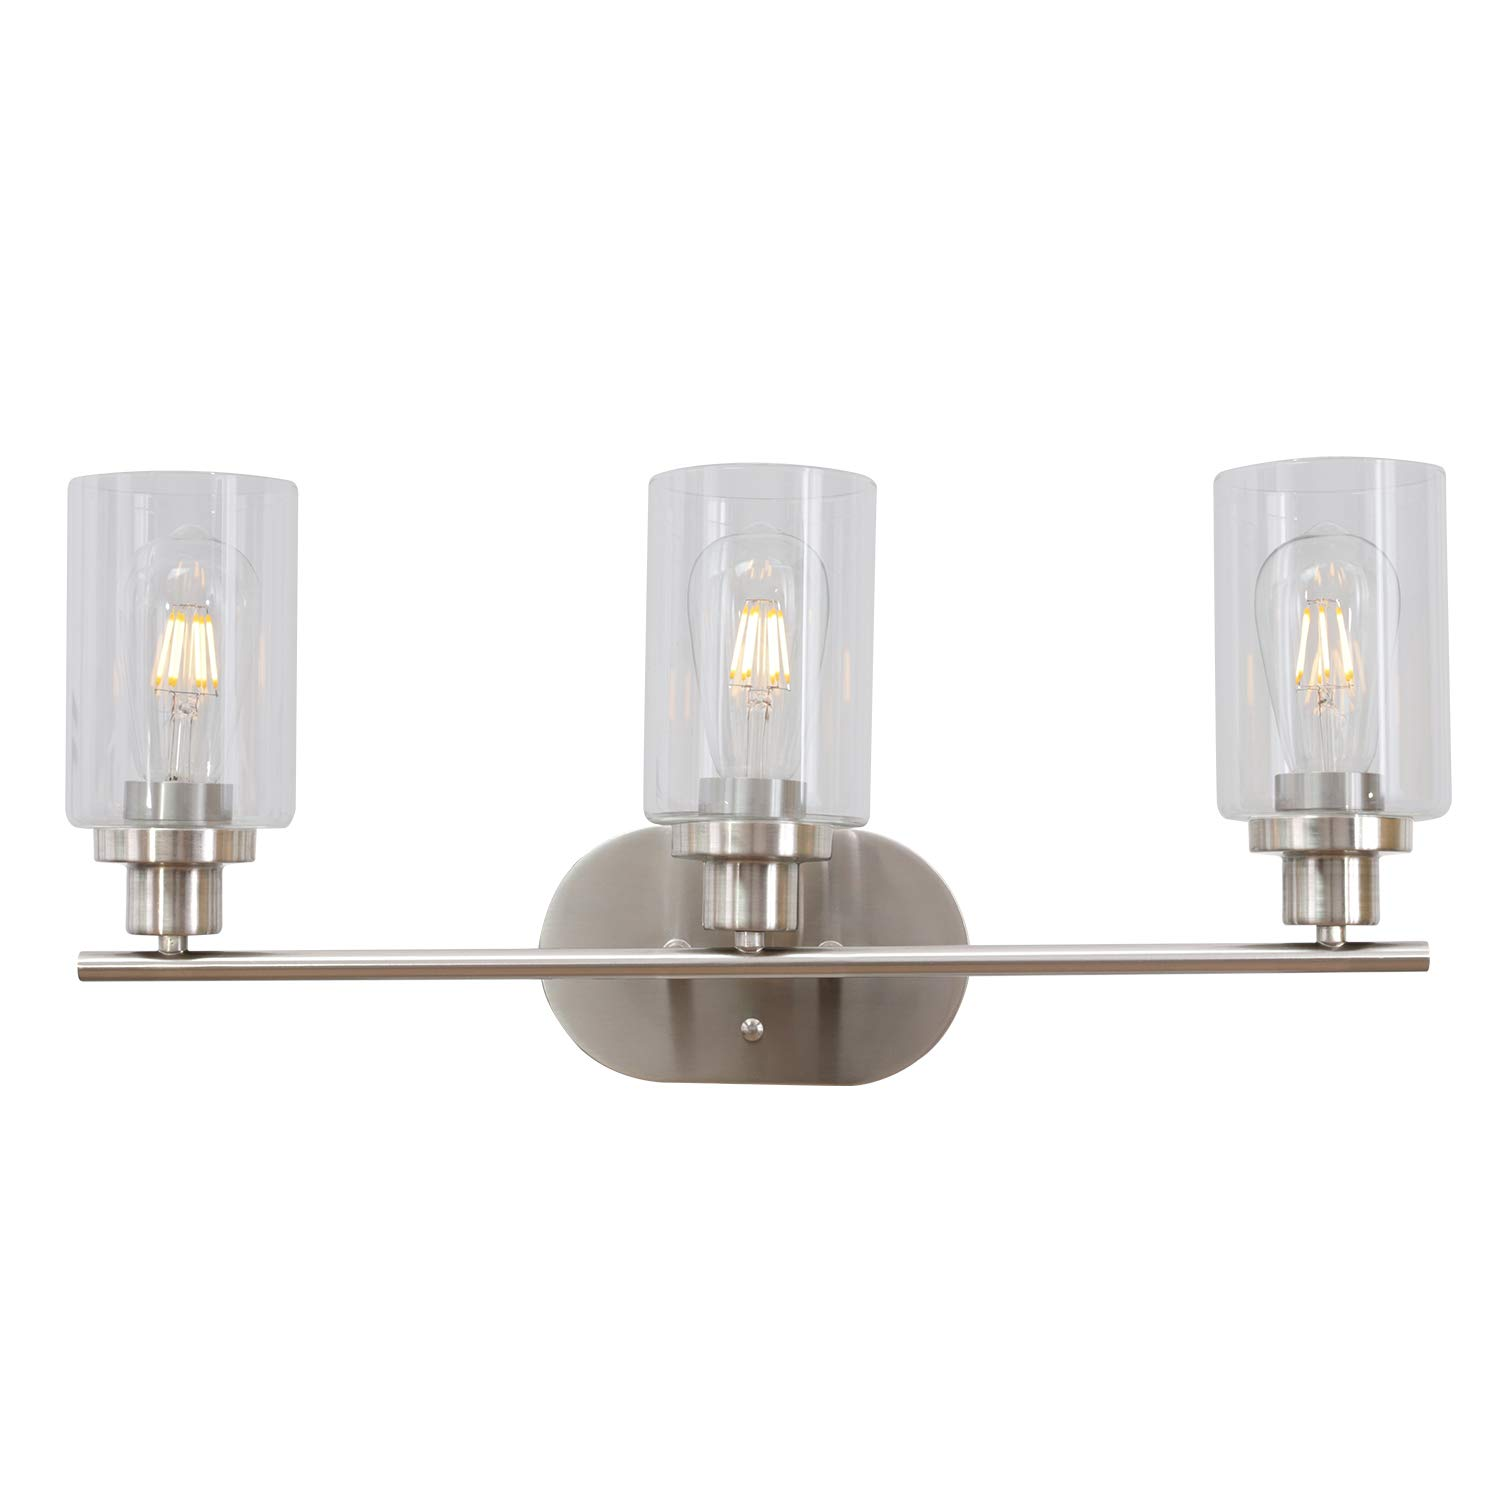 VINLUZ 3 Light Brushed Brass Wall Light Contemporary Wall Sconce Bathroom Lighting Fixture with Clear Glass Shade UL Listed